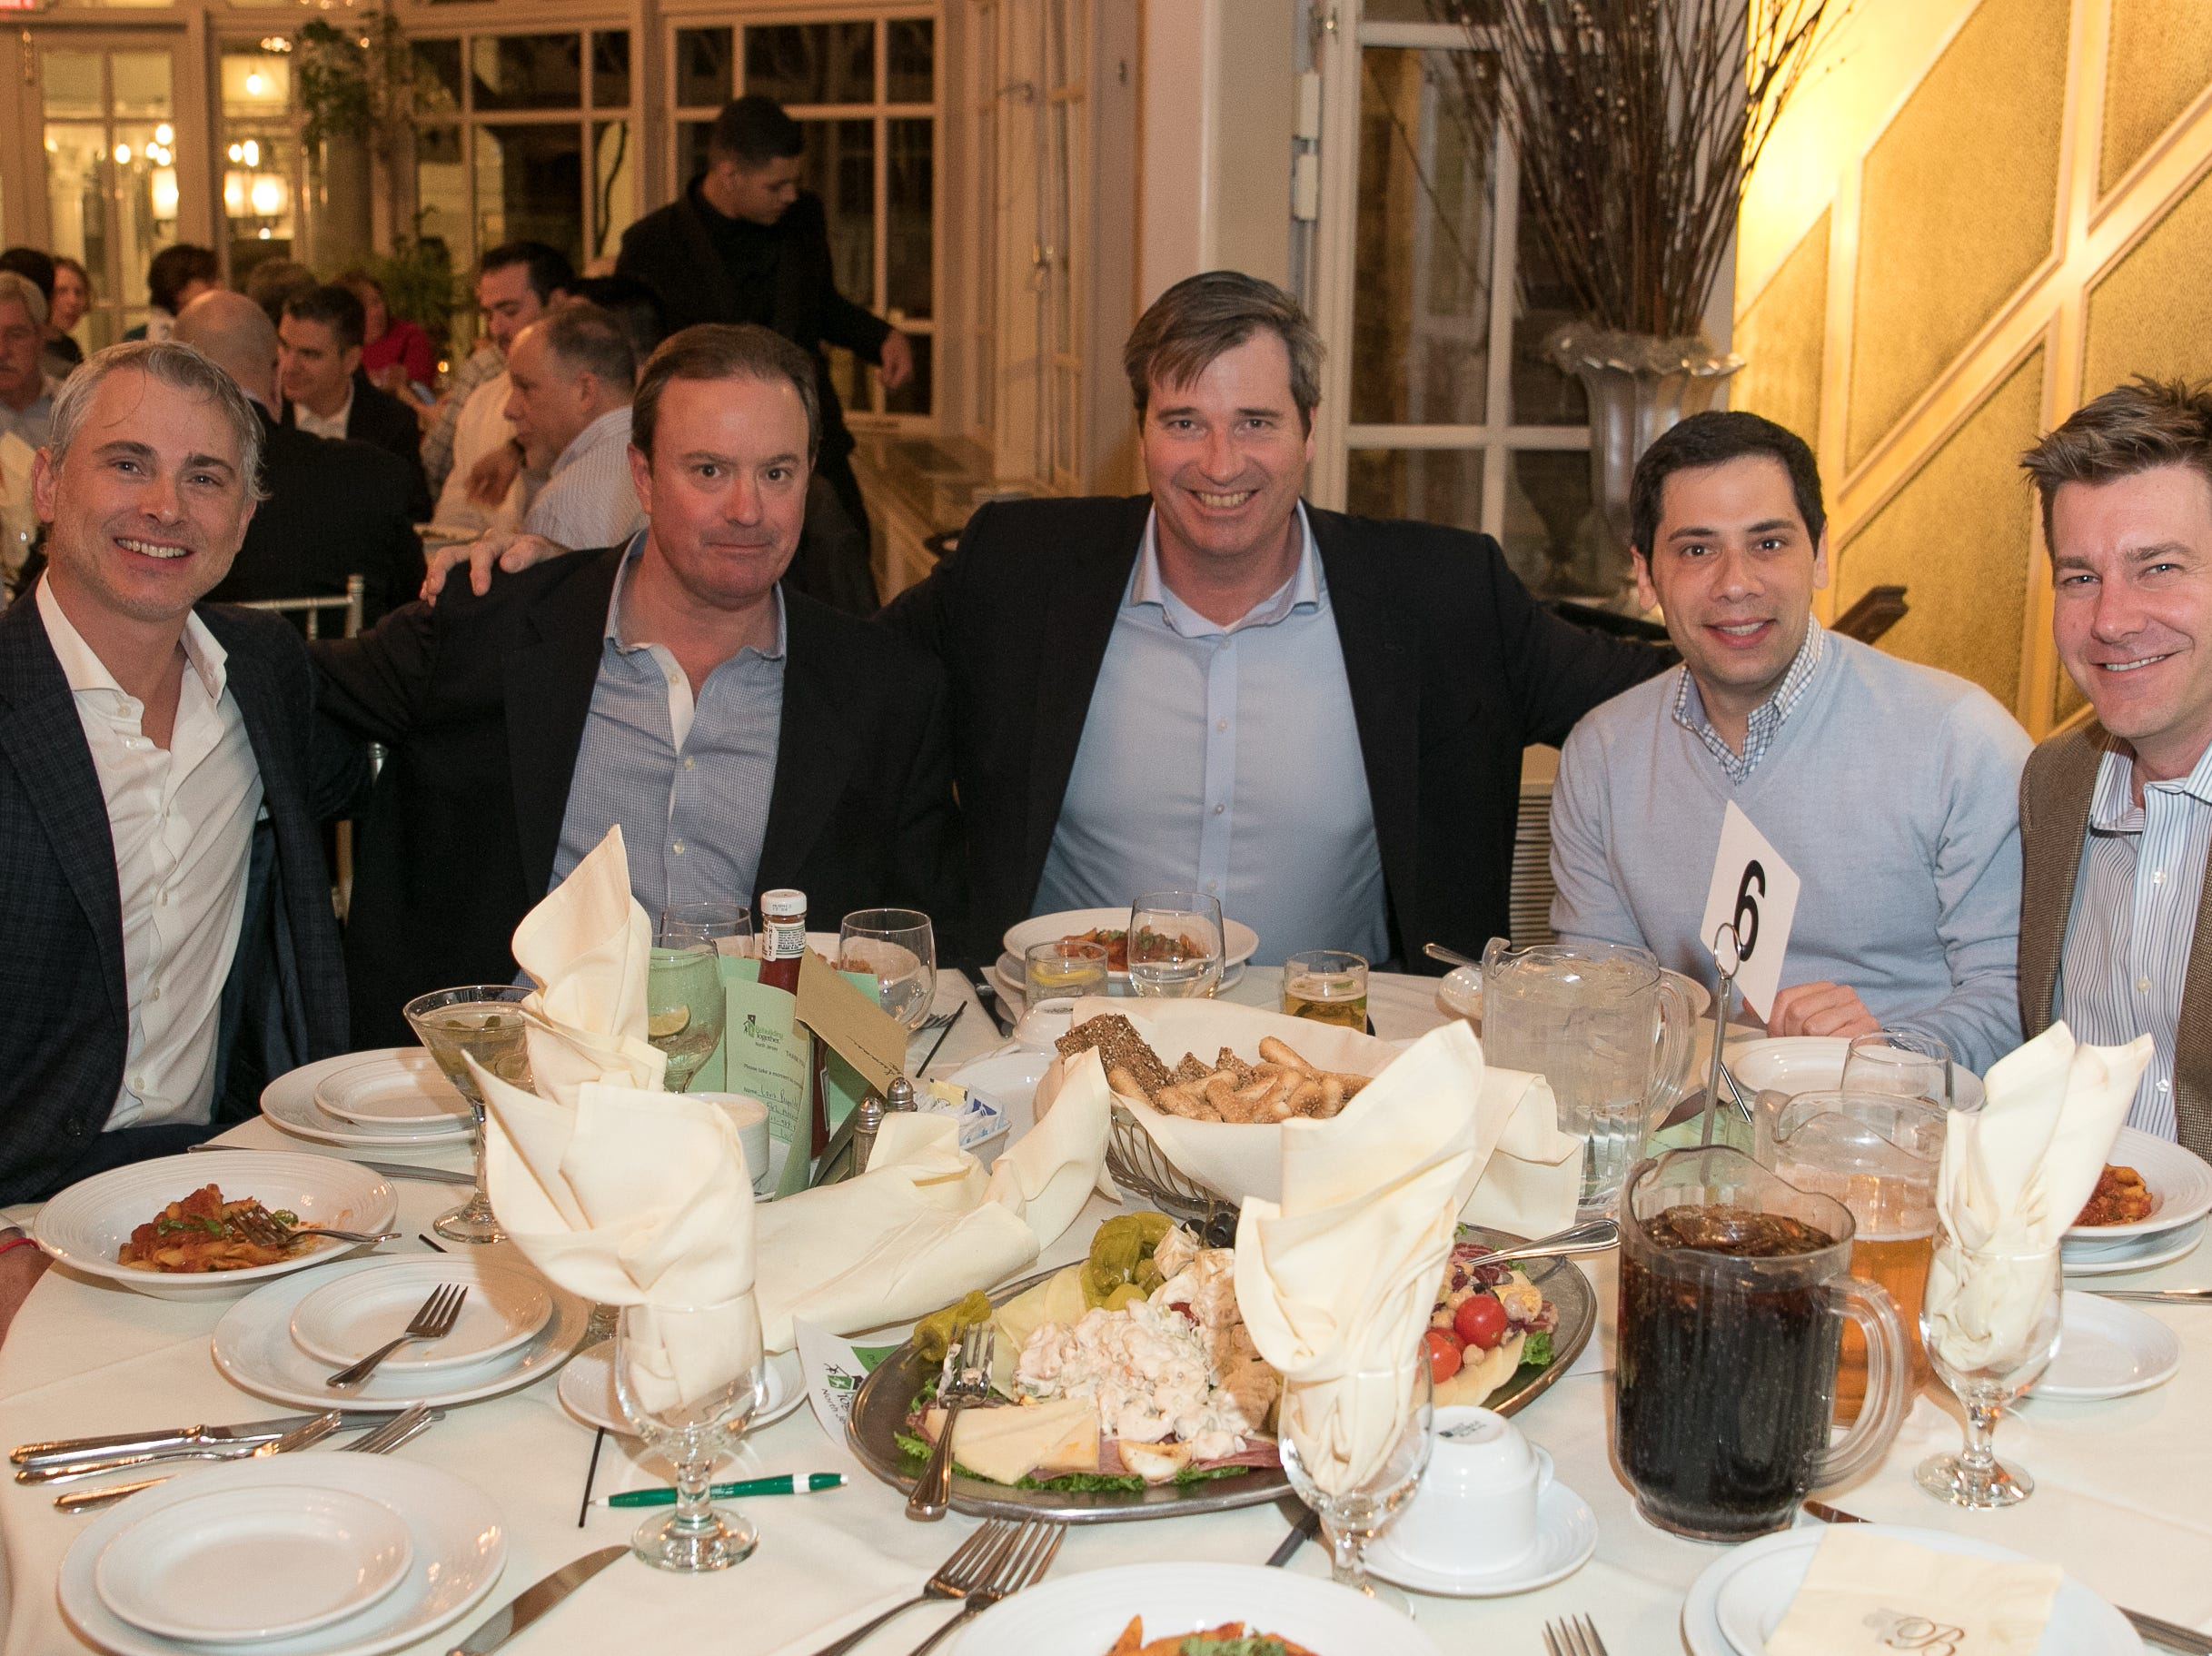 Rebuilding Together North Jersey held its third annual Beefsteak Dinner with former NY Giants Howard Cross, Amani Toomer, and Sam Garnes at the Brownstone in Paterson. 03/07/2019